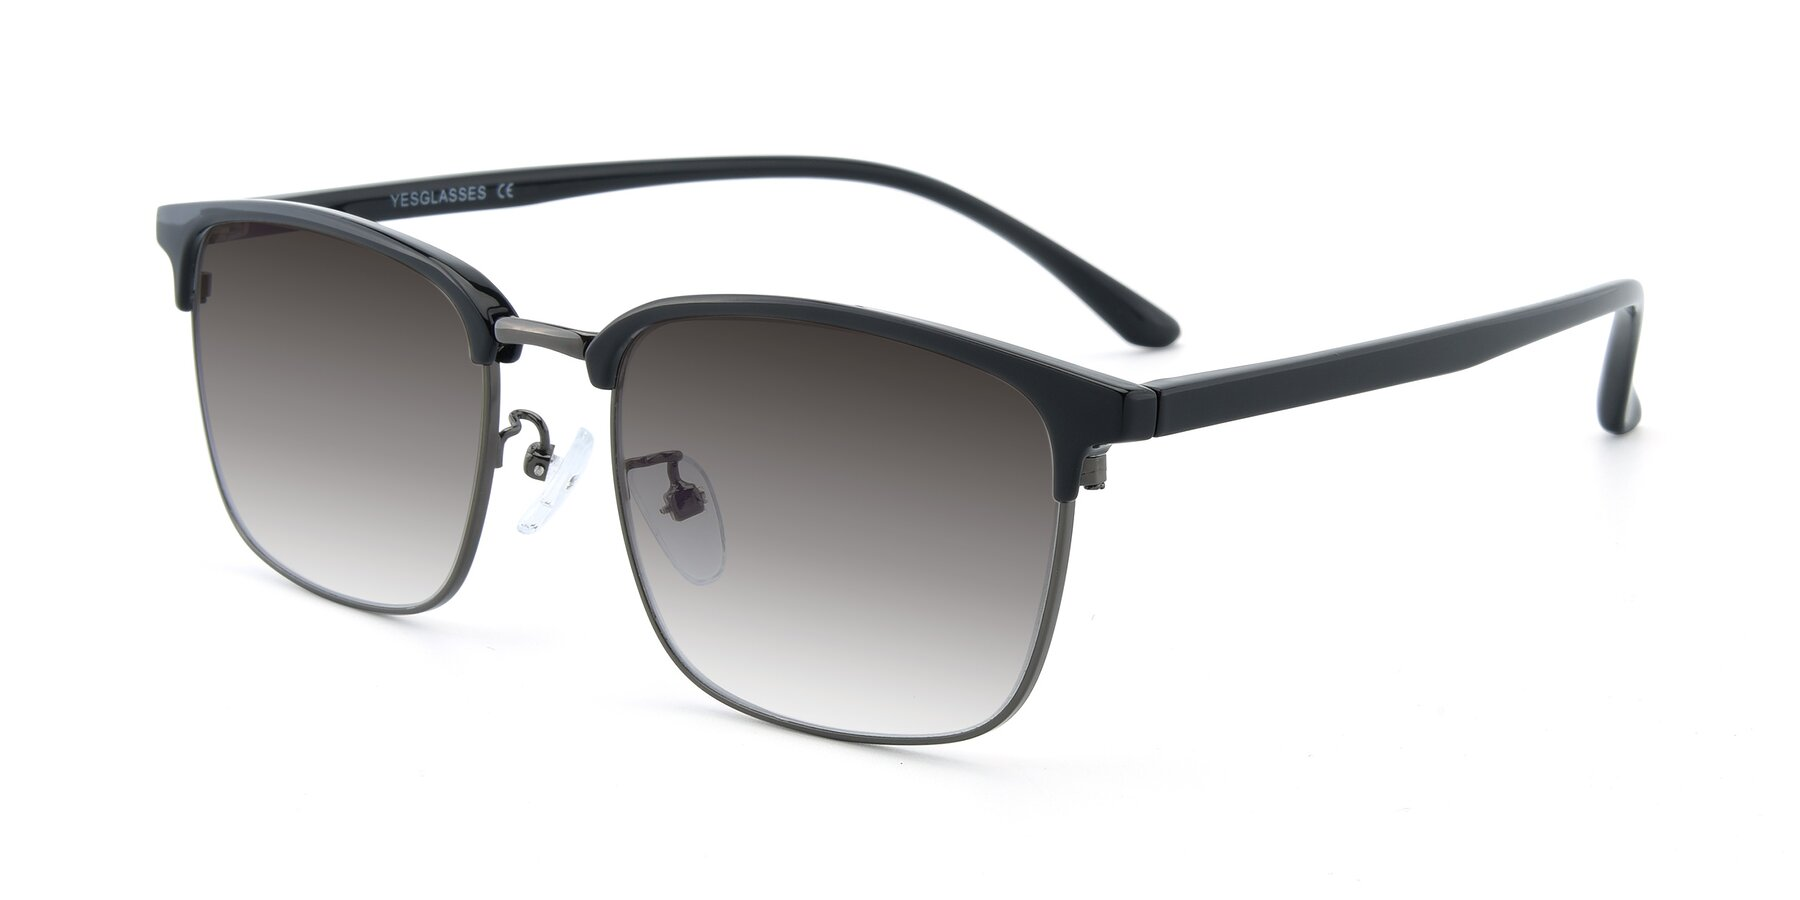 Angle of 00340 in Black-Gun with Gray Gradient Lenses